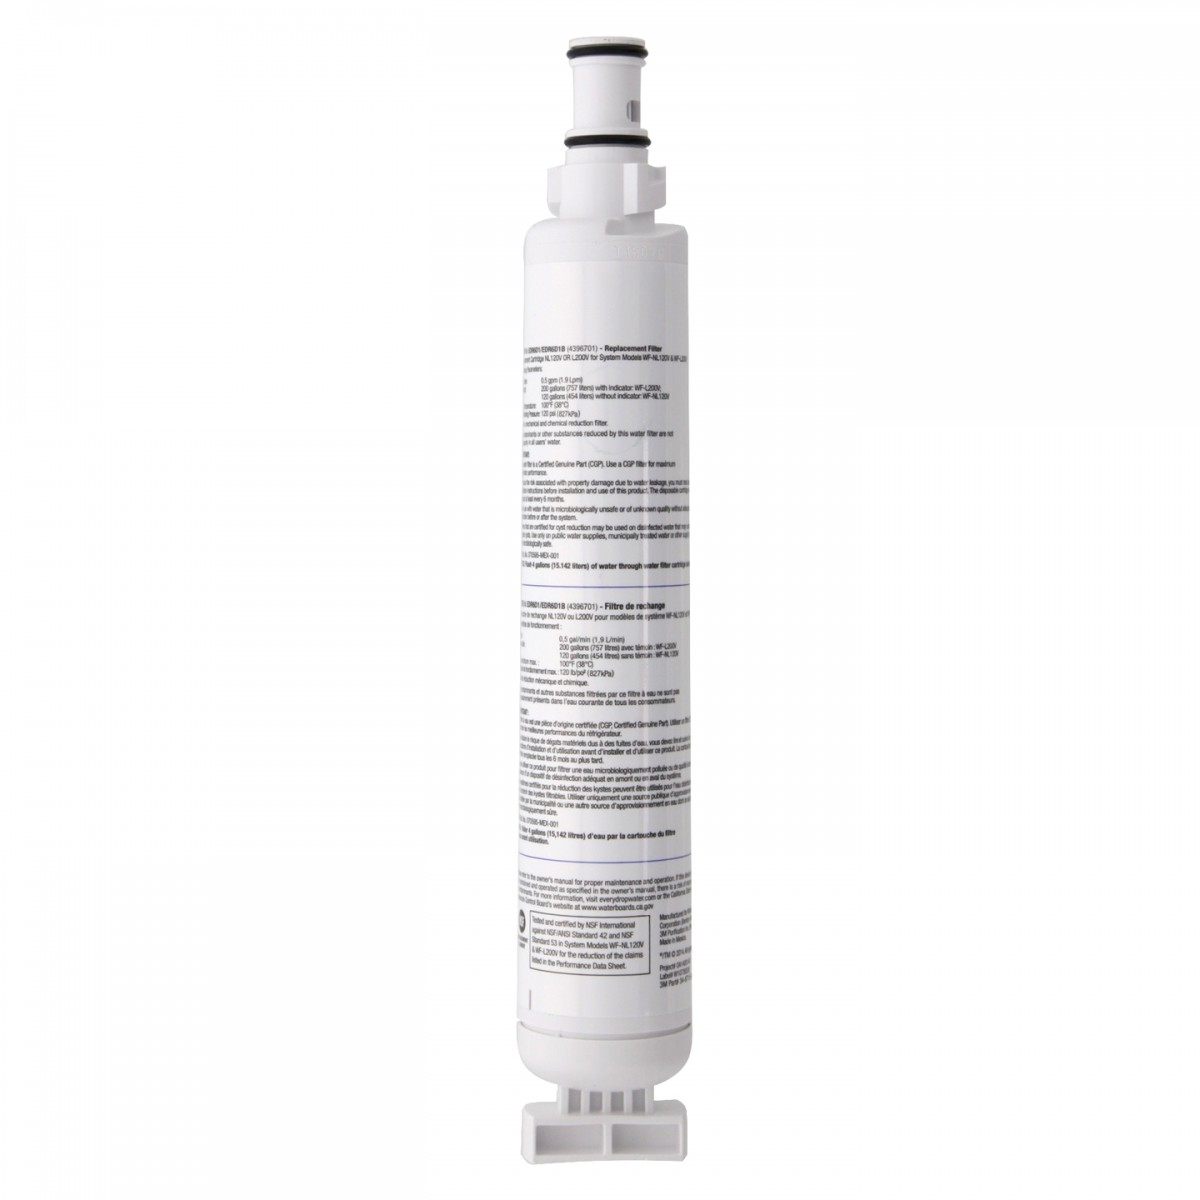 Everydrop ice and water refrigerator filter 6 by whirlpool - Whirlpool pur ice and water filter ...